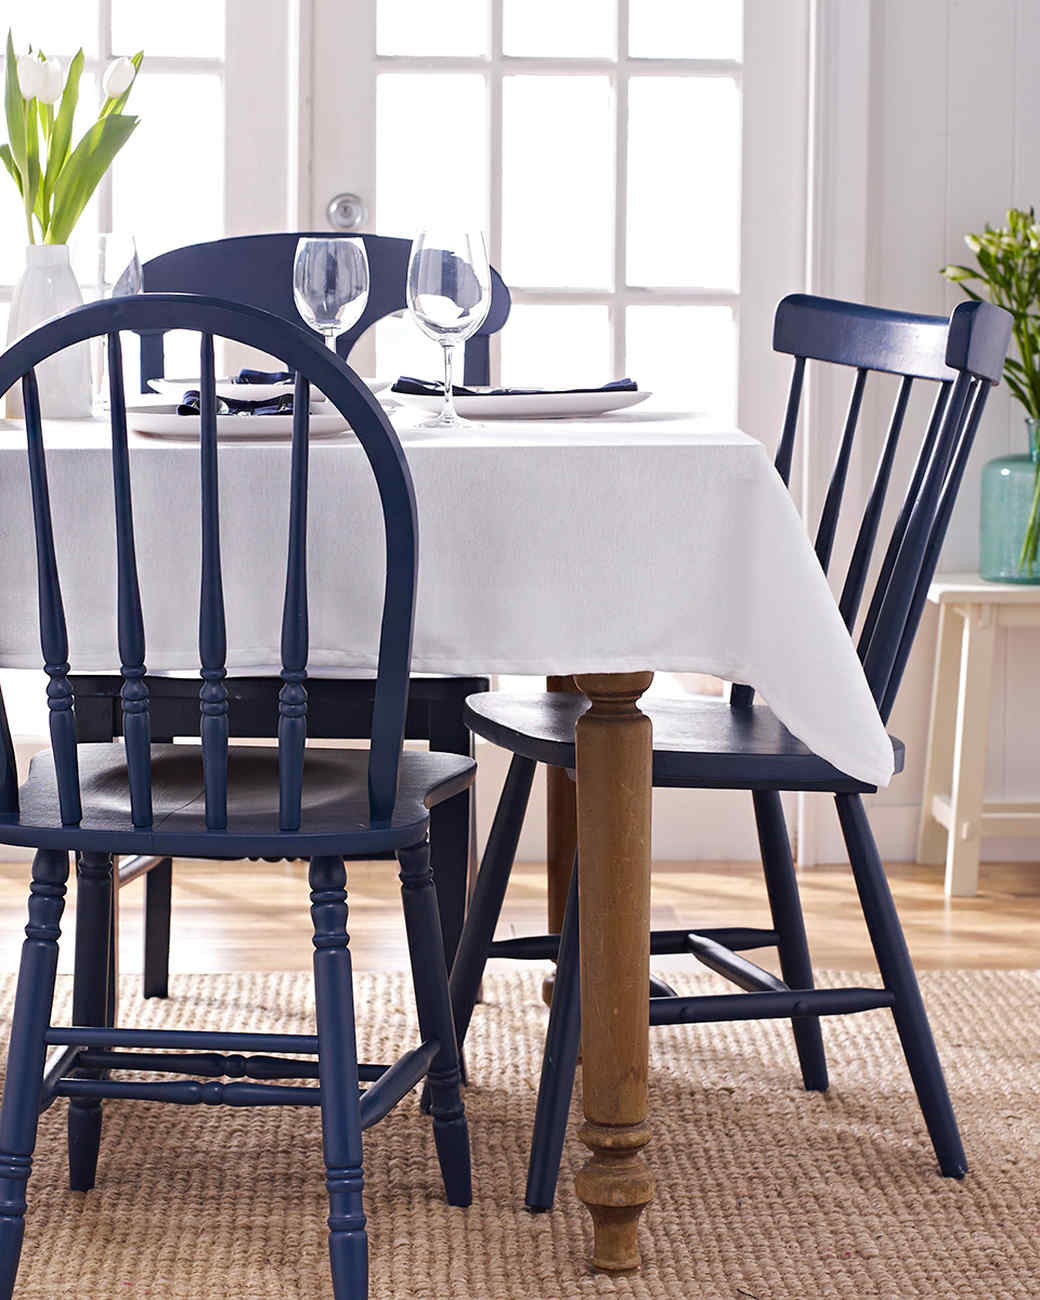 Painted Wood Dining Room Decorating: Painted Wooden Chairs